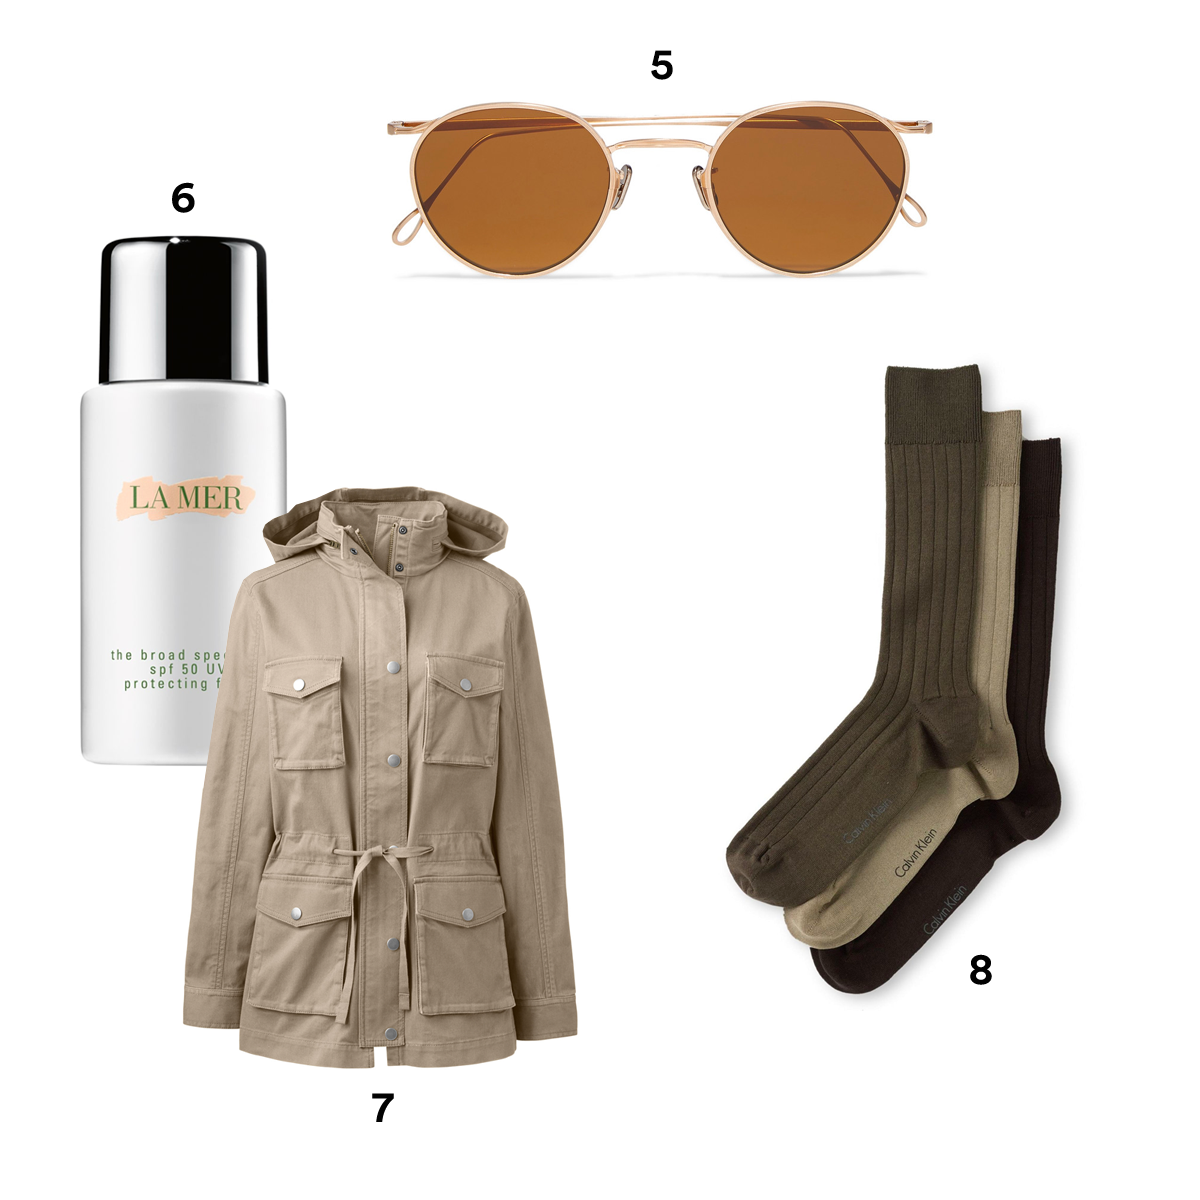 5.) EYEVAN 7285 Round Frame Gold-Tone Sunglasses, available at Barneys New York. 6.) LA MER The Broad Spectrum SPF 50 Daily UV Protecting Fluid, available at Nordstrom. 7.) LANDS' END Women's Petite Long Sleeve Military Jacket. 8.) CALVIN KLEIN 3-Pack Wide Rib Socks, available at Nordstrom.